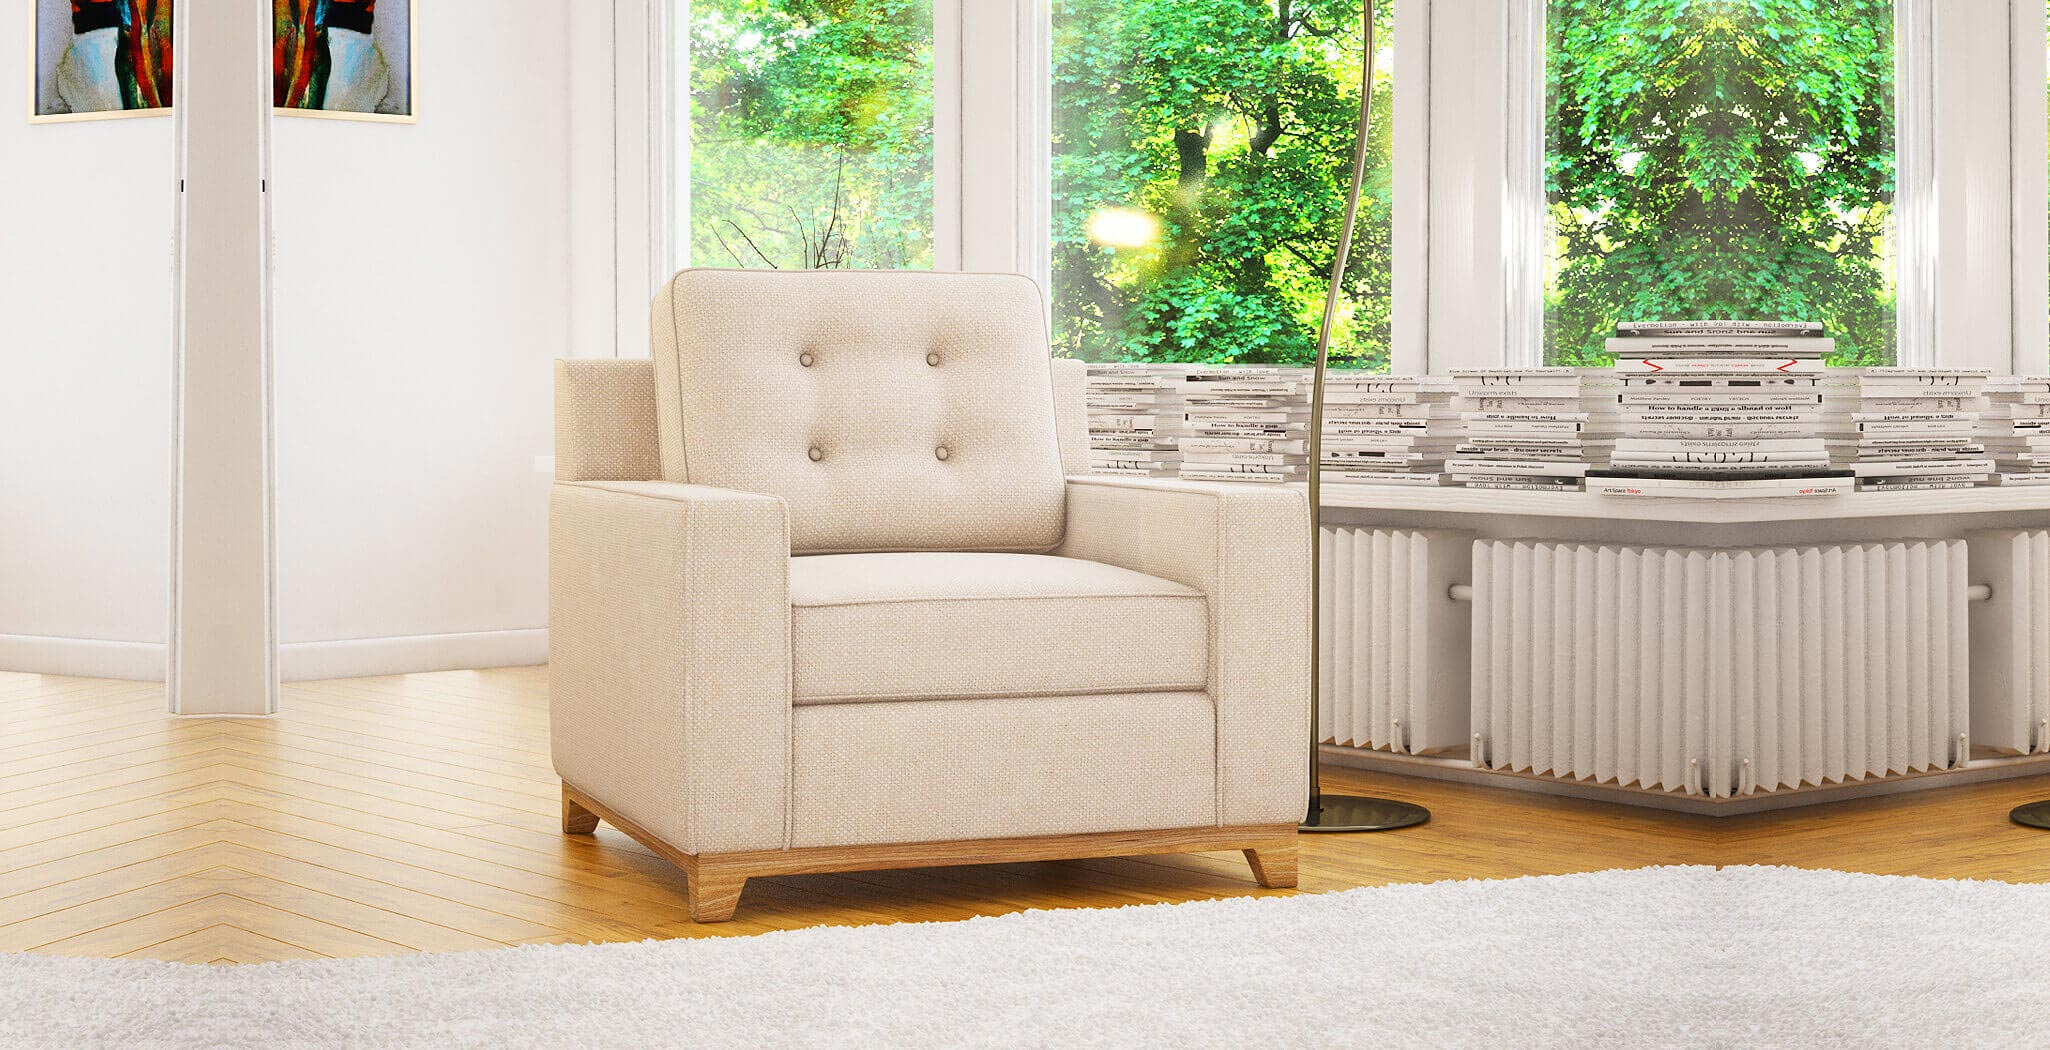 alexandria chair furniture gallery 1